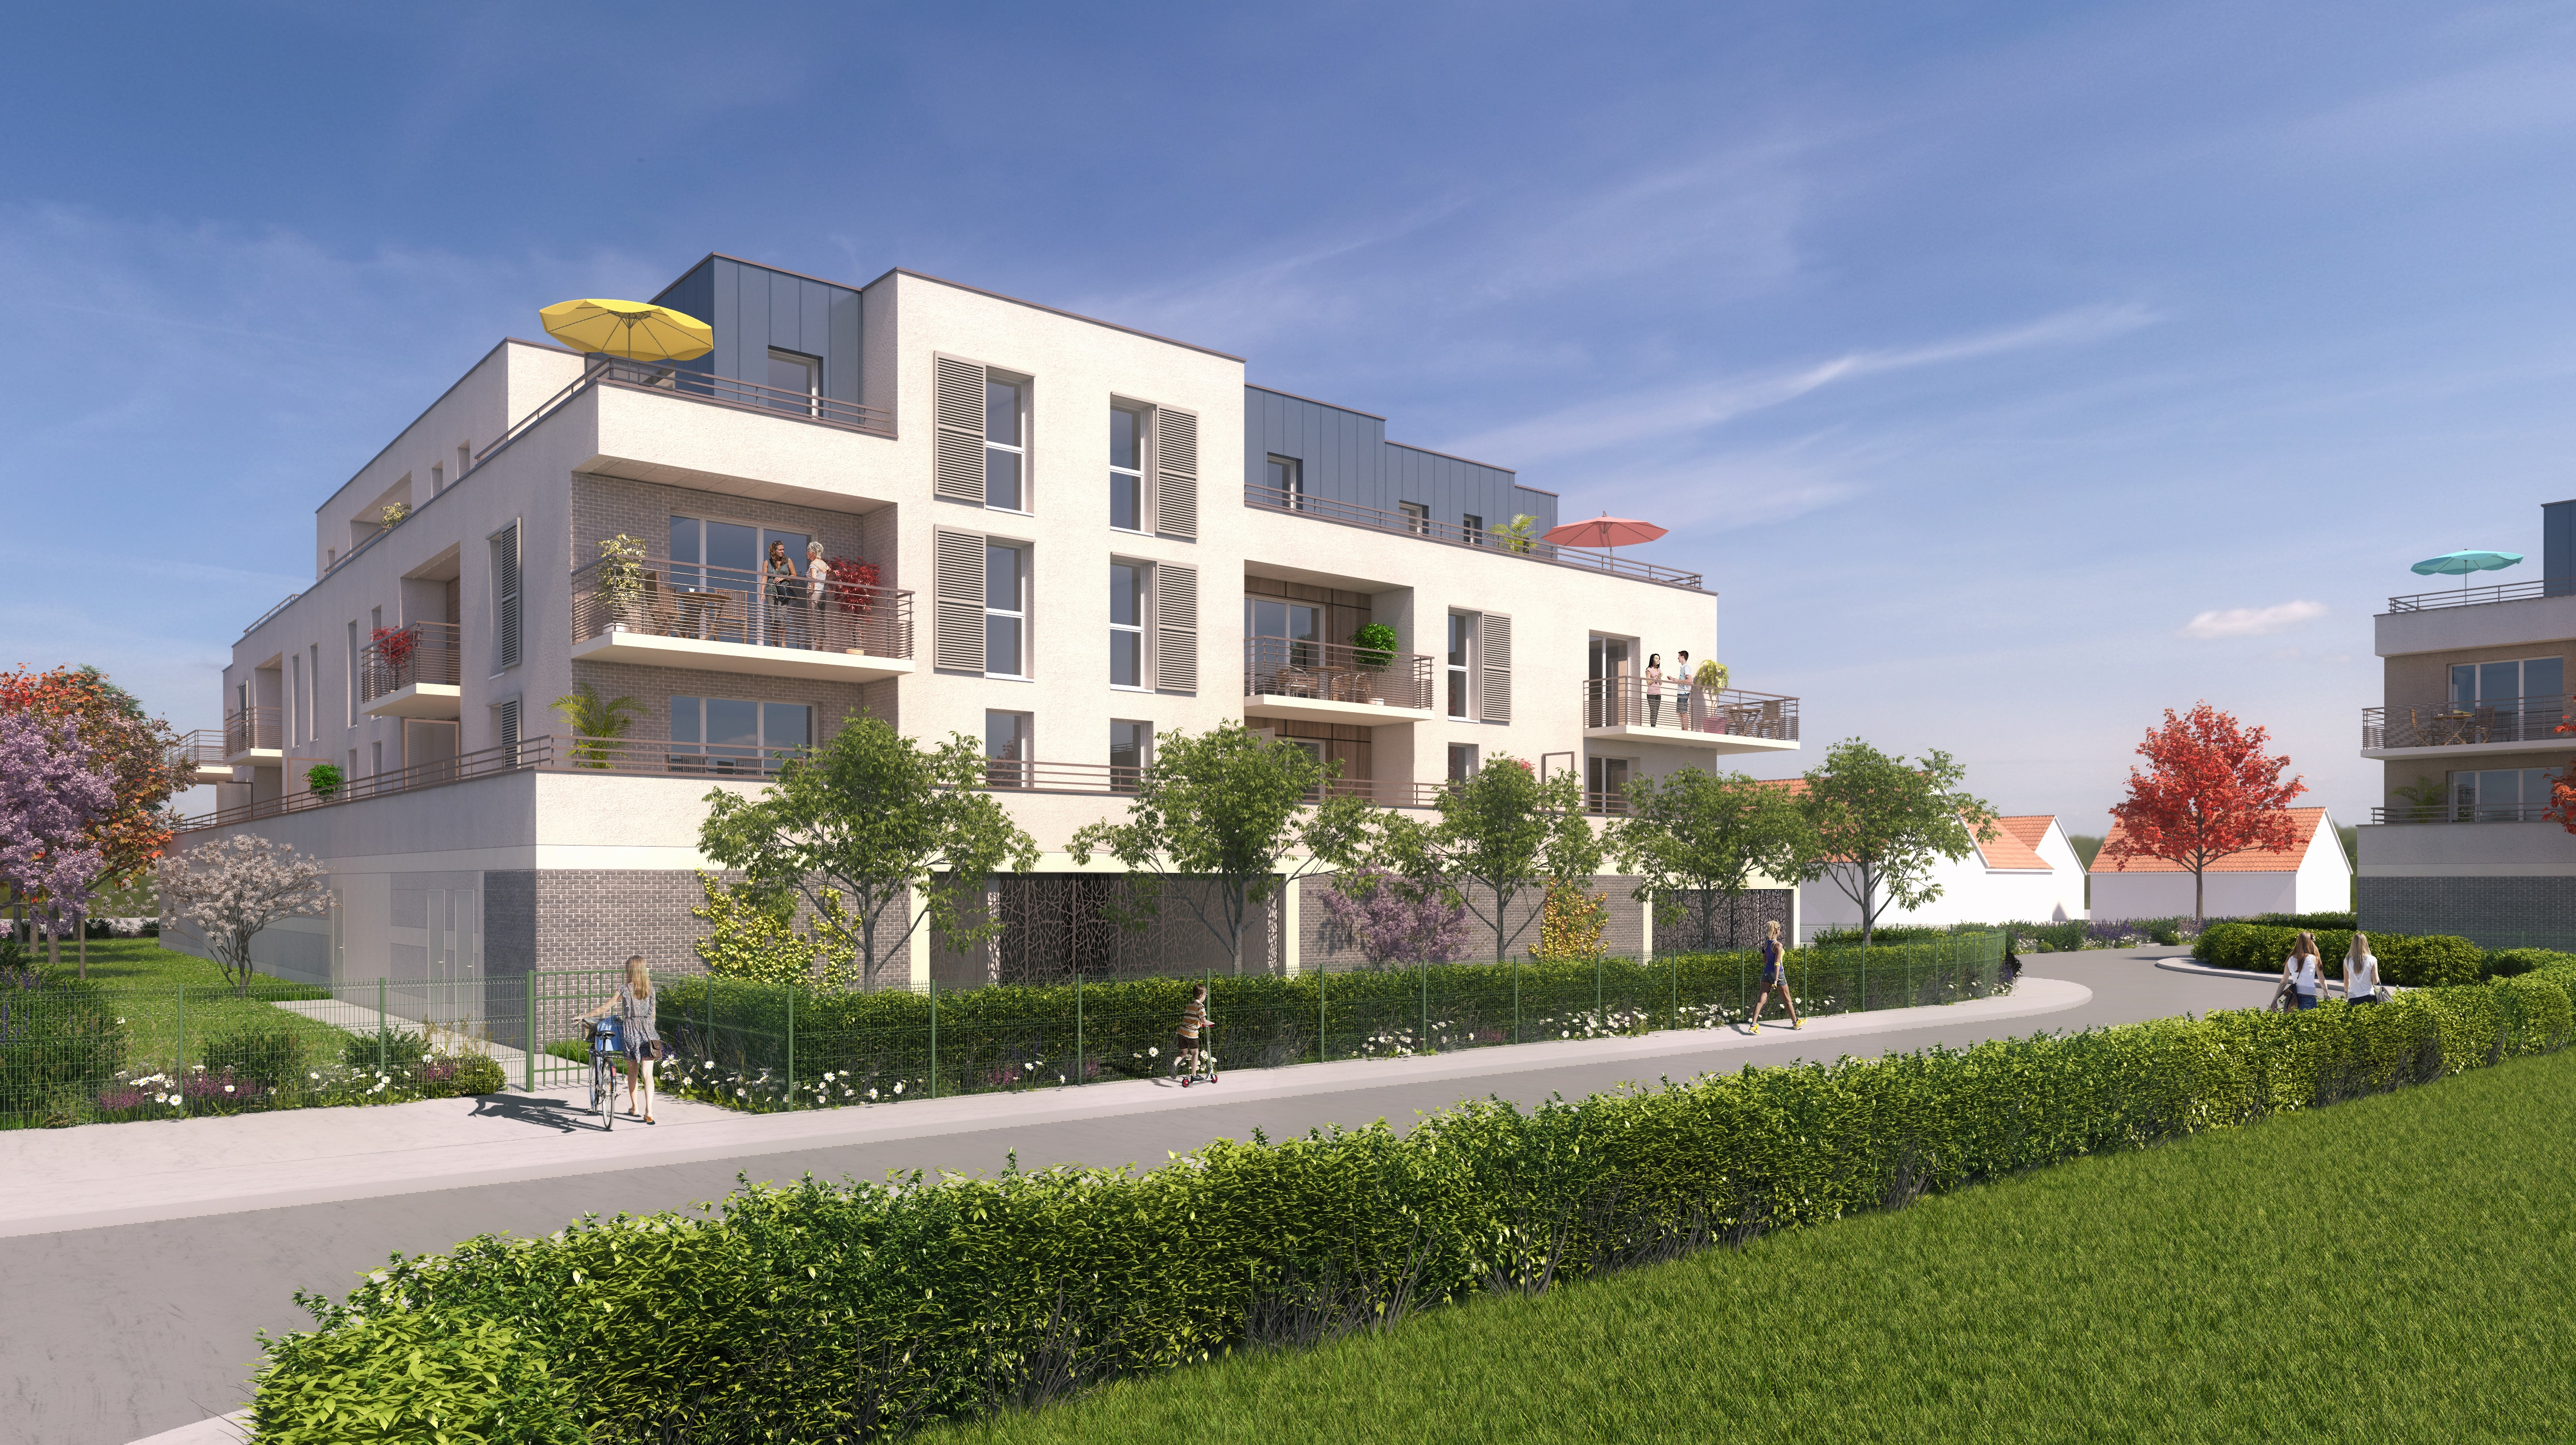 Programme immobilier neuf ORLEANS Orleans | Photo 1/2